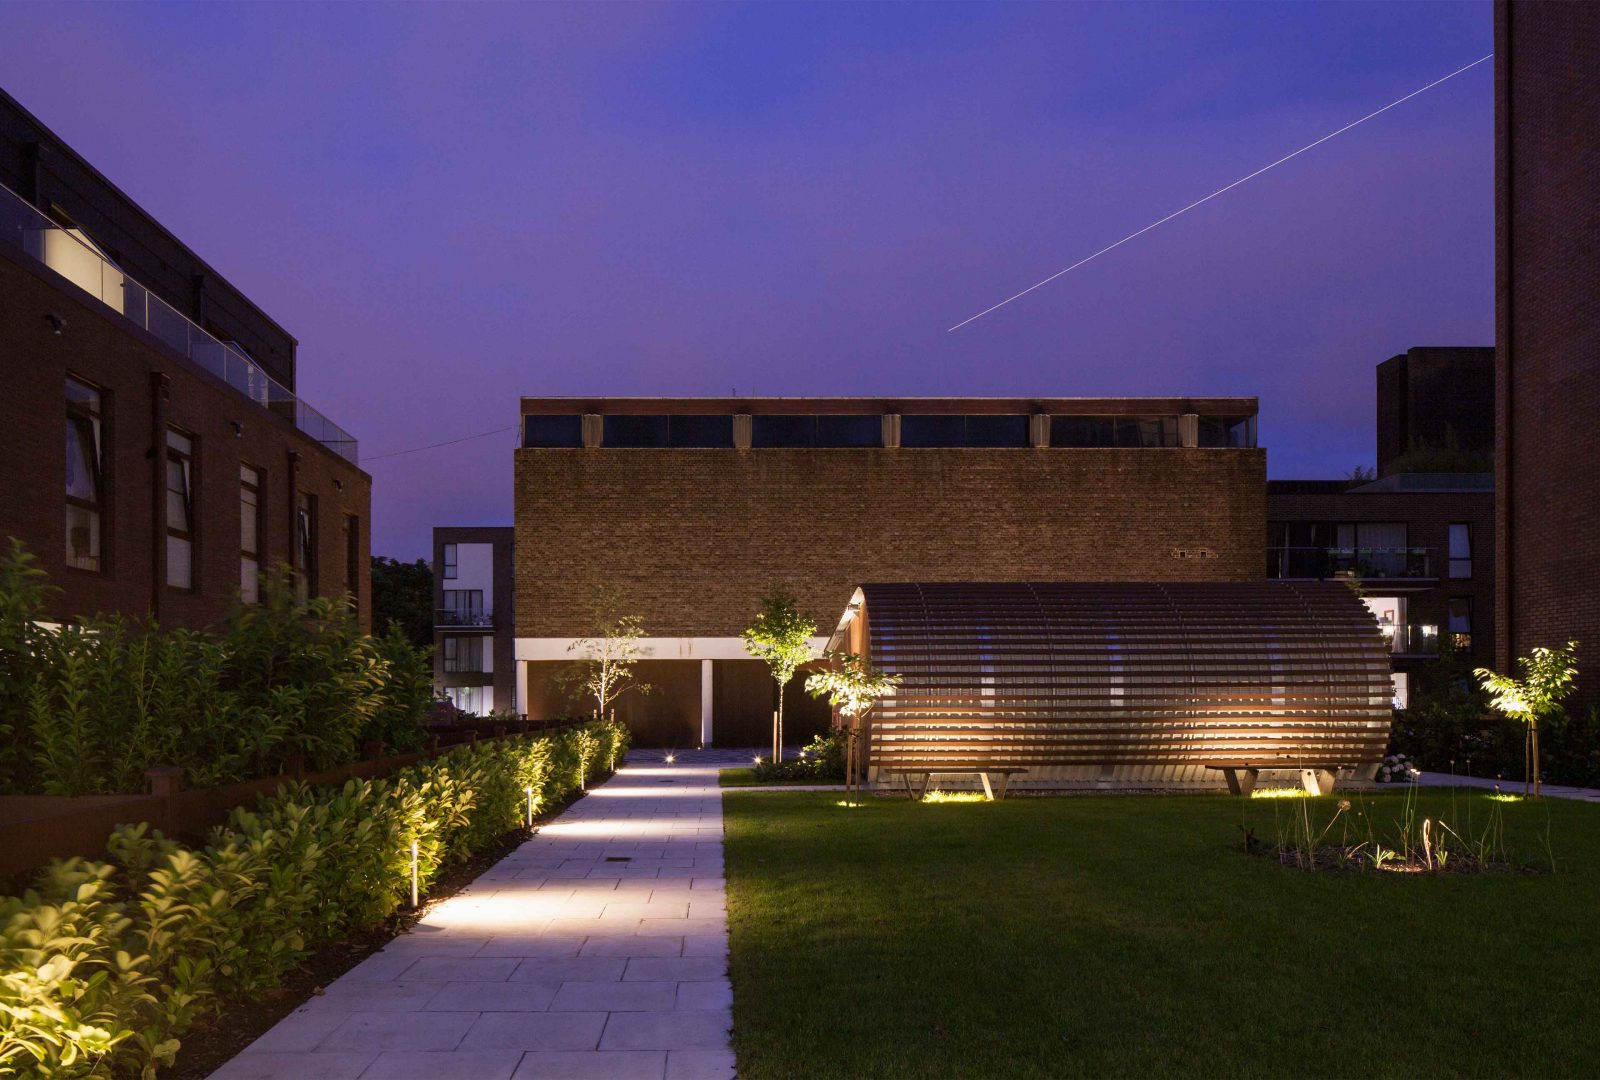 Architectural lighting design housing development gardens landscape studio n